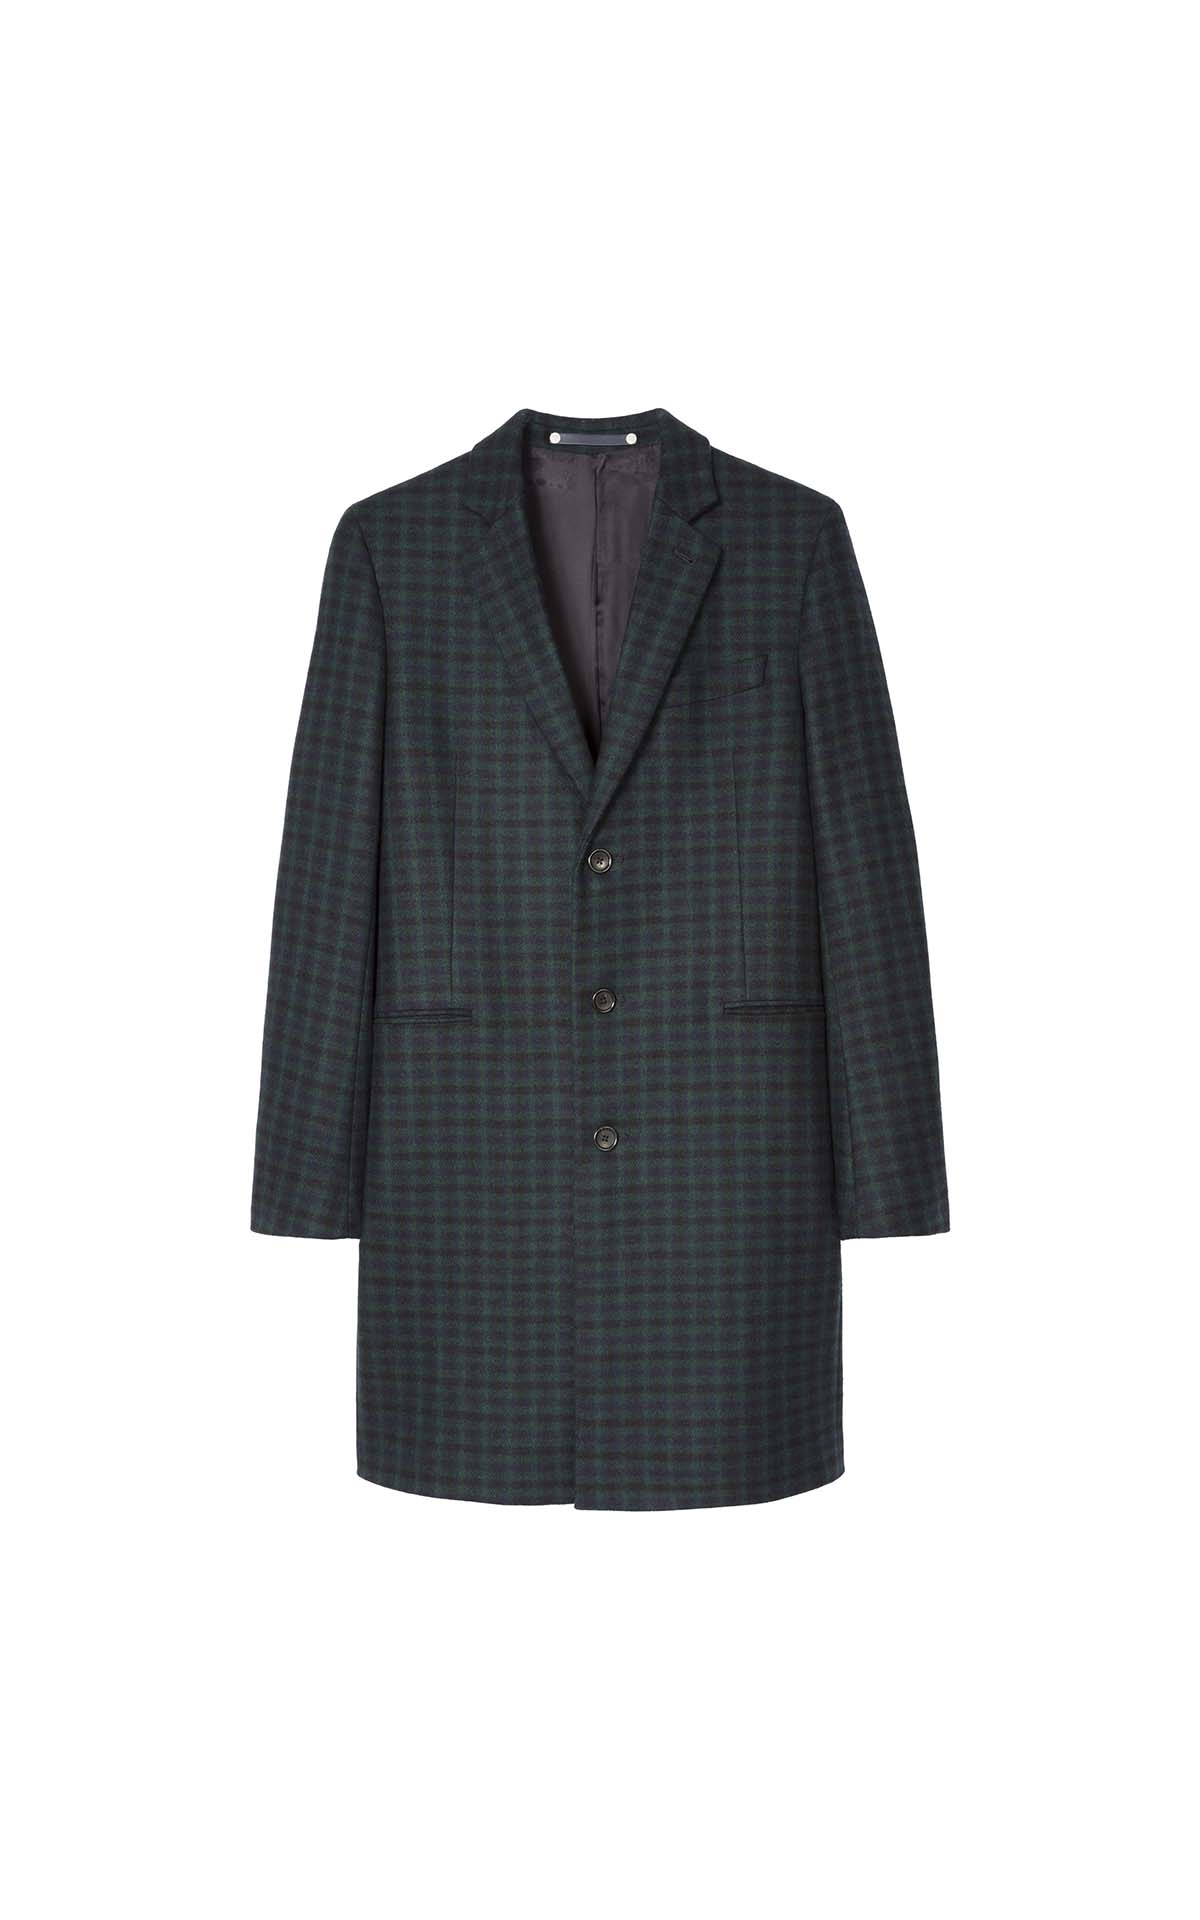 Paul Smith Men's Overcoat at The Bicester Village Shopping Collection